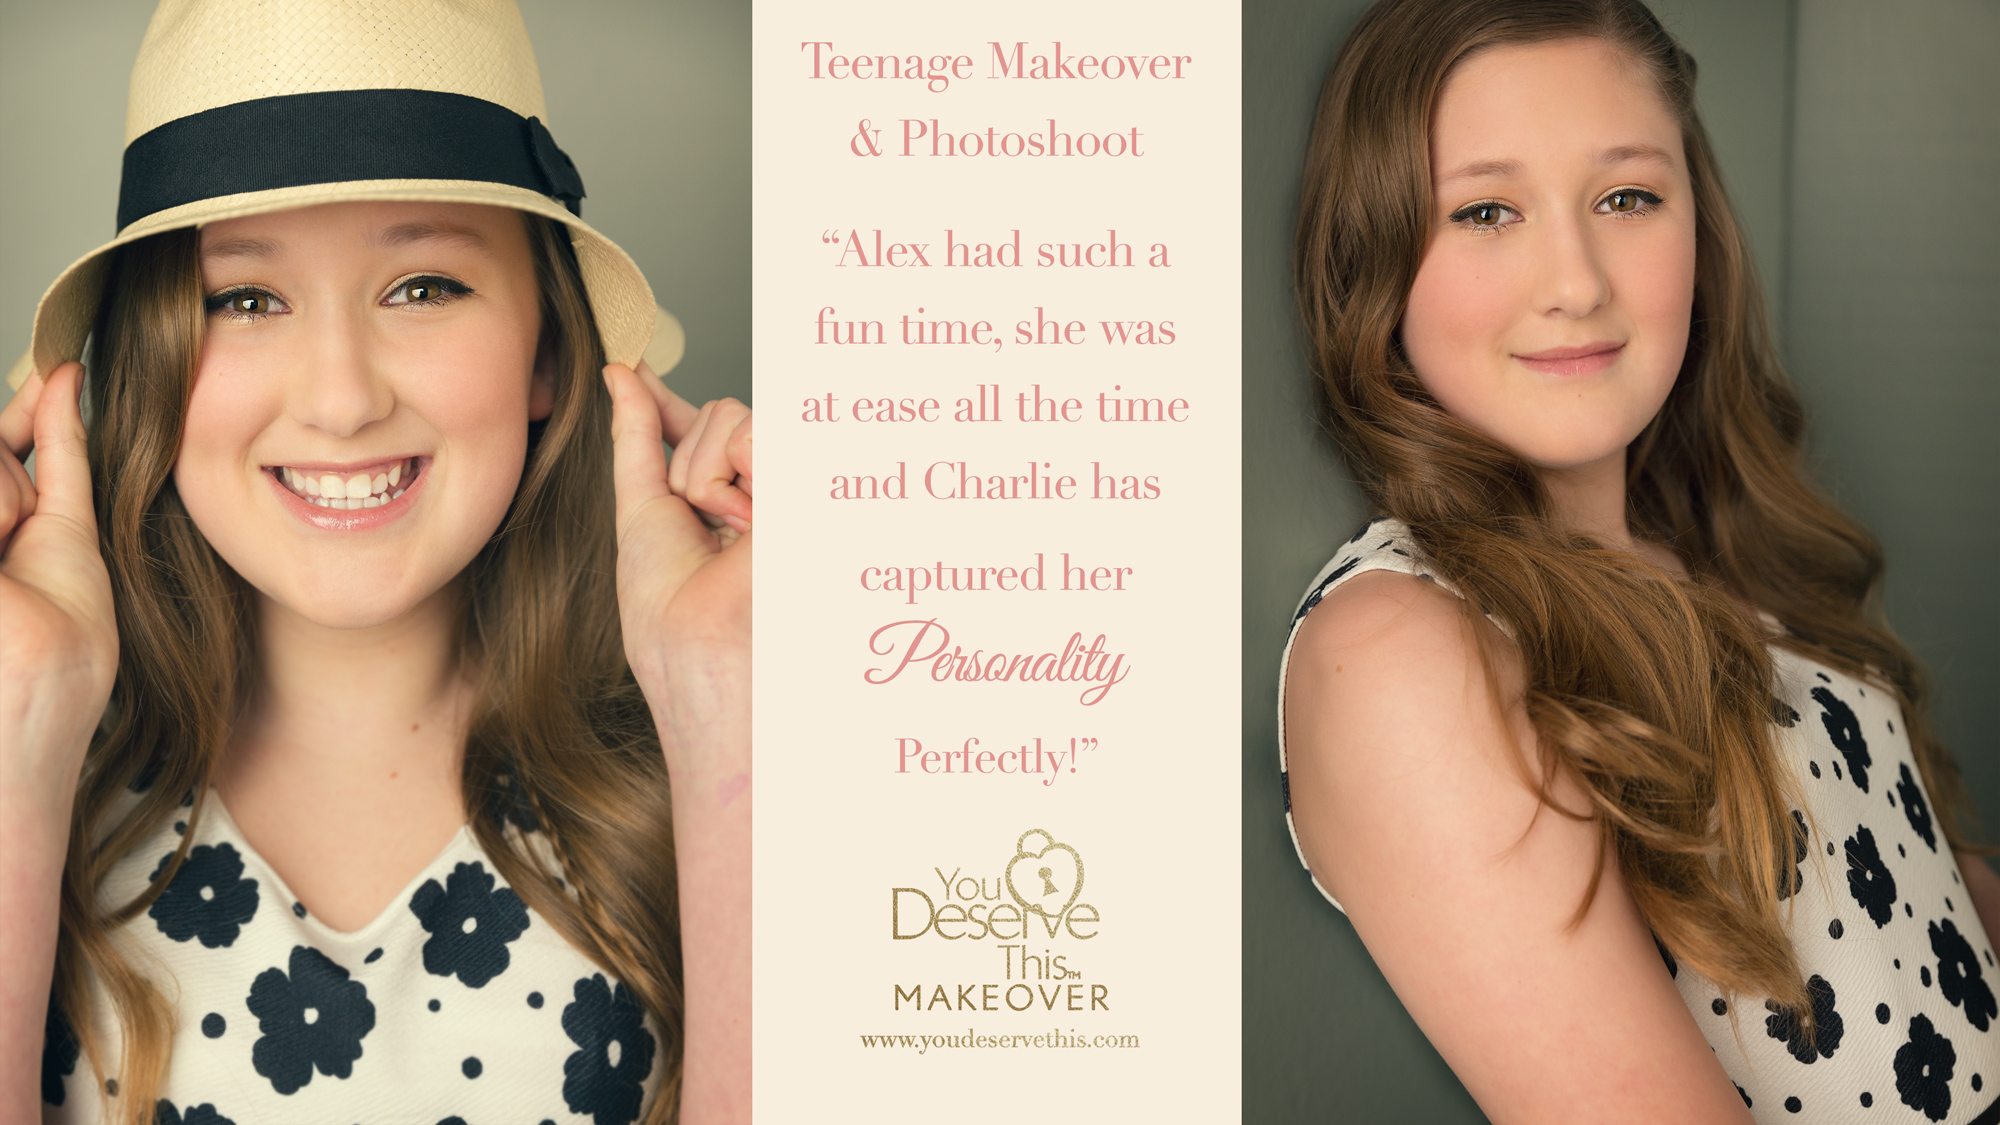 Teenage Photoshoot and Makeover